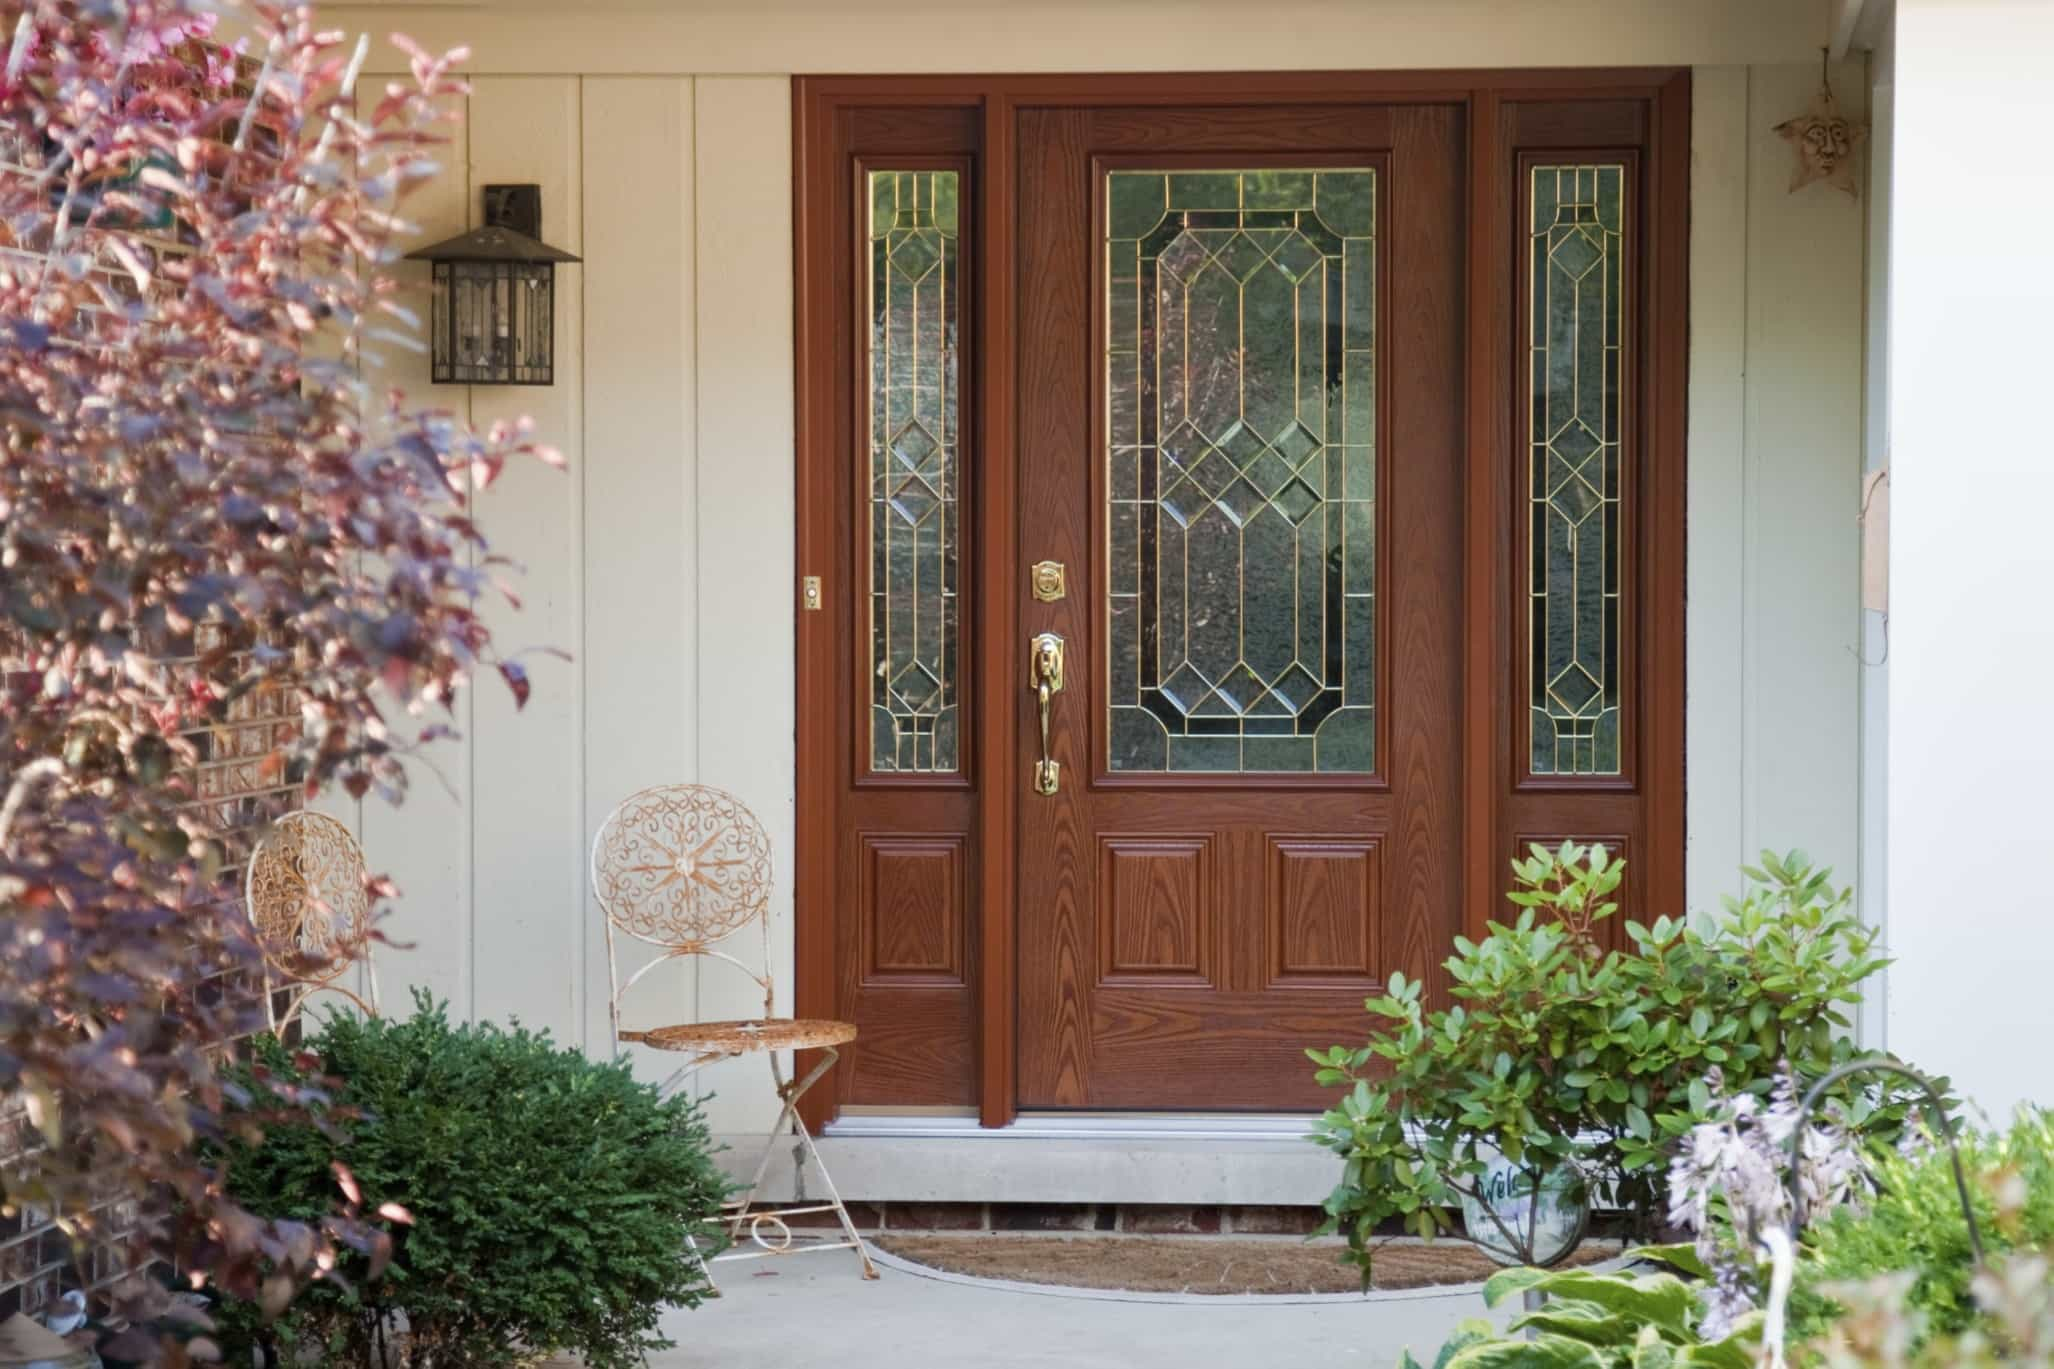 1369 #6B4131 Fiberglass Entry Doors A Welcome Inviting Home Starts With Your Front  picture/photo Exterior Fiberglass Doors 39992054